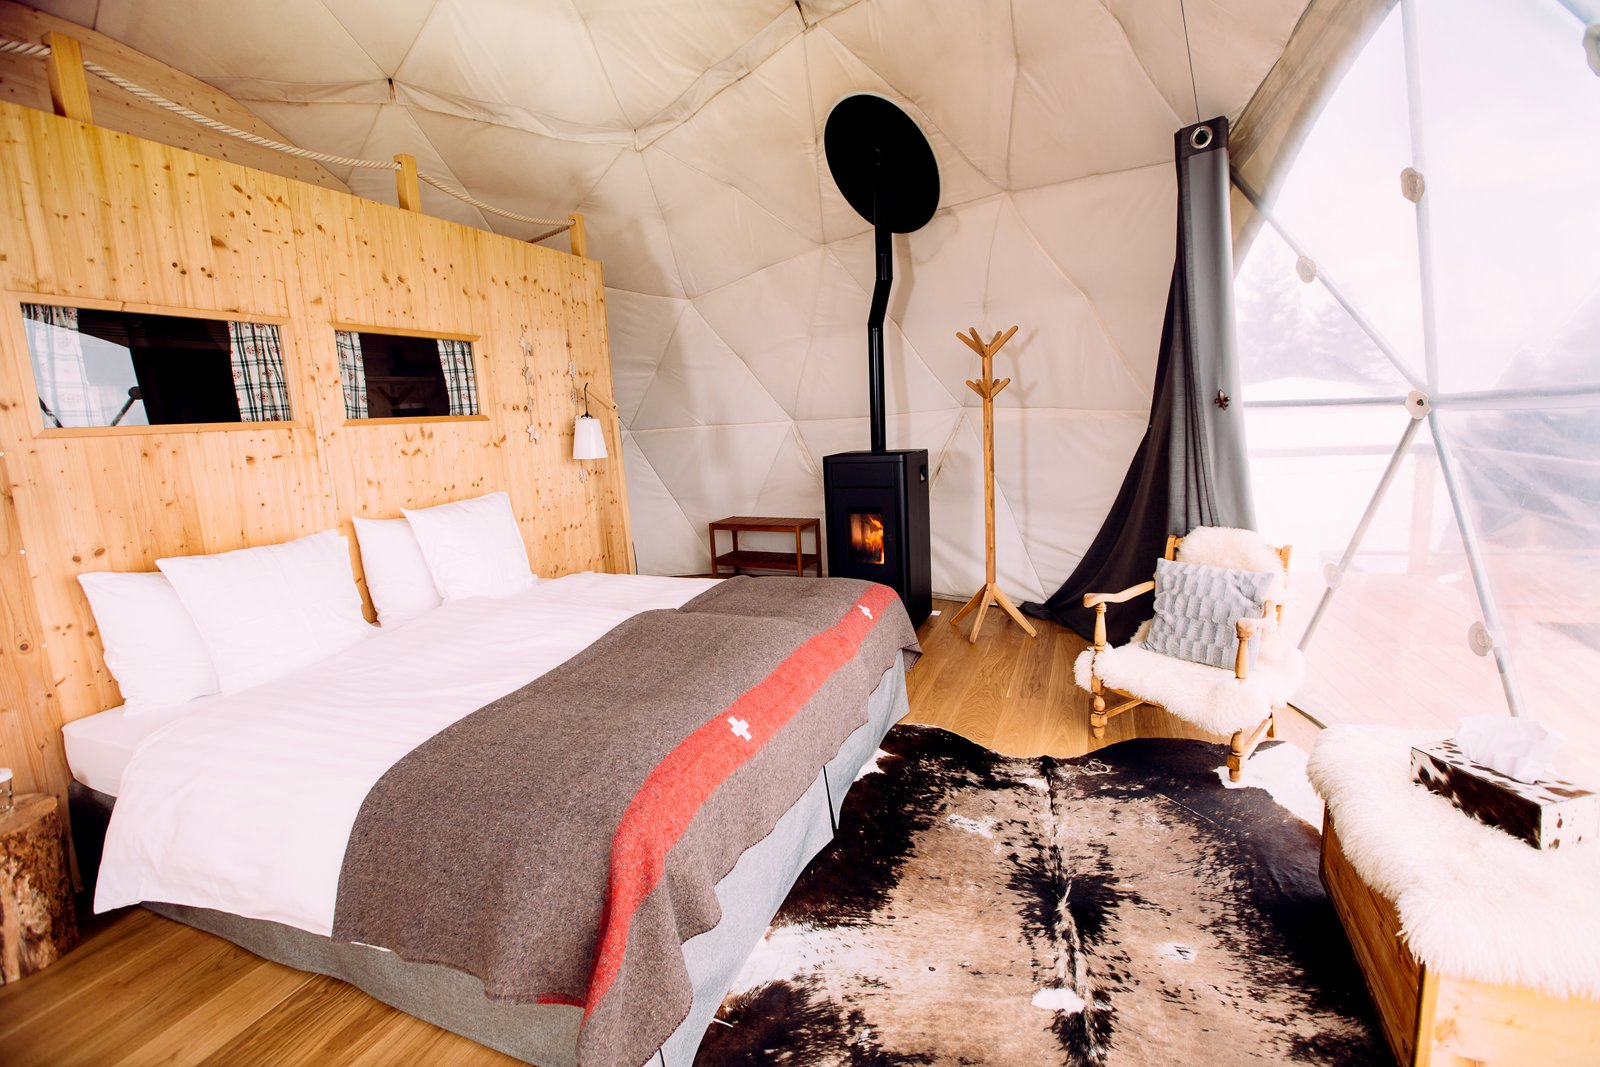 Bedroom, Chair, Medium Hardwood Floor, Lamps, Rug Floor, Bed, Storage, Wall Lighting, and Night Stands All the pods are equipped with organic bedding and efficient pellet wood‑burning stoves adding to the cozy interiors.  Photo 4 of 11 in Go Eco-Friendly Glamping in These Geodesic Domes in the Swiss Alps